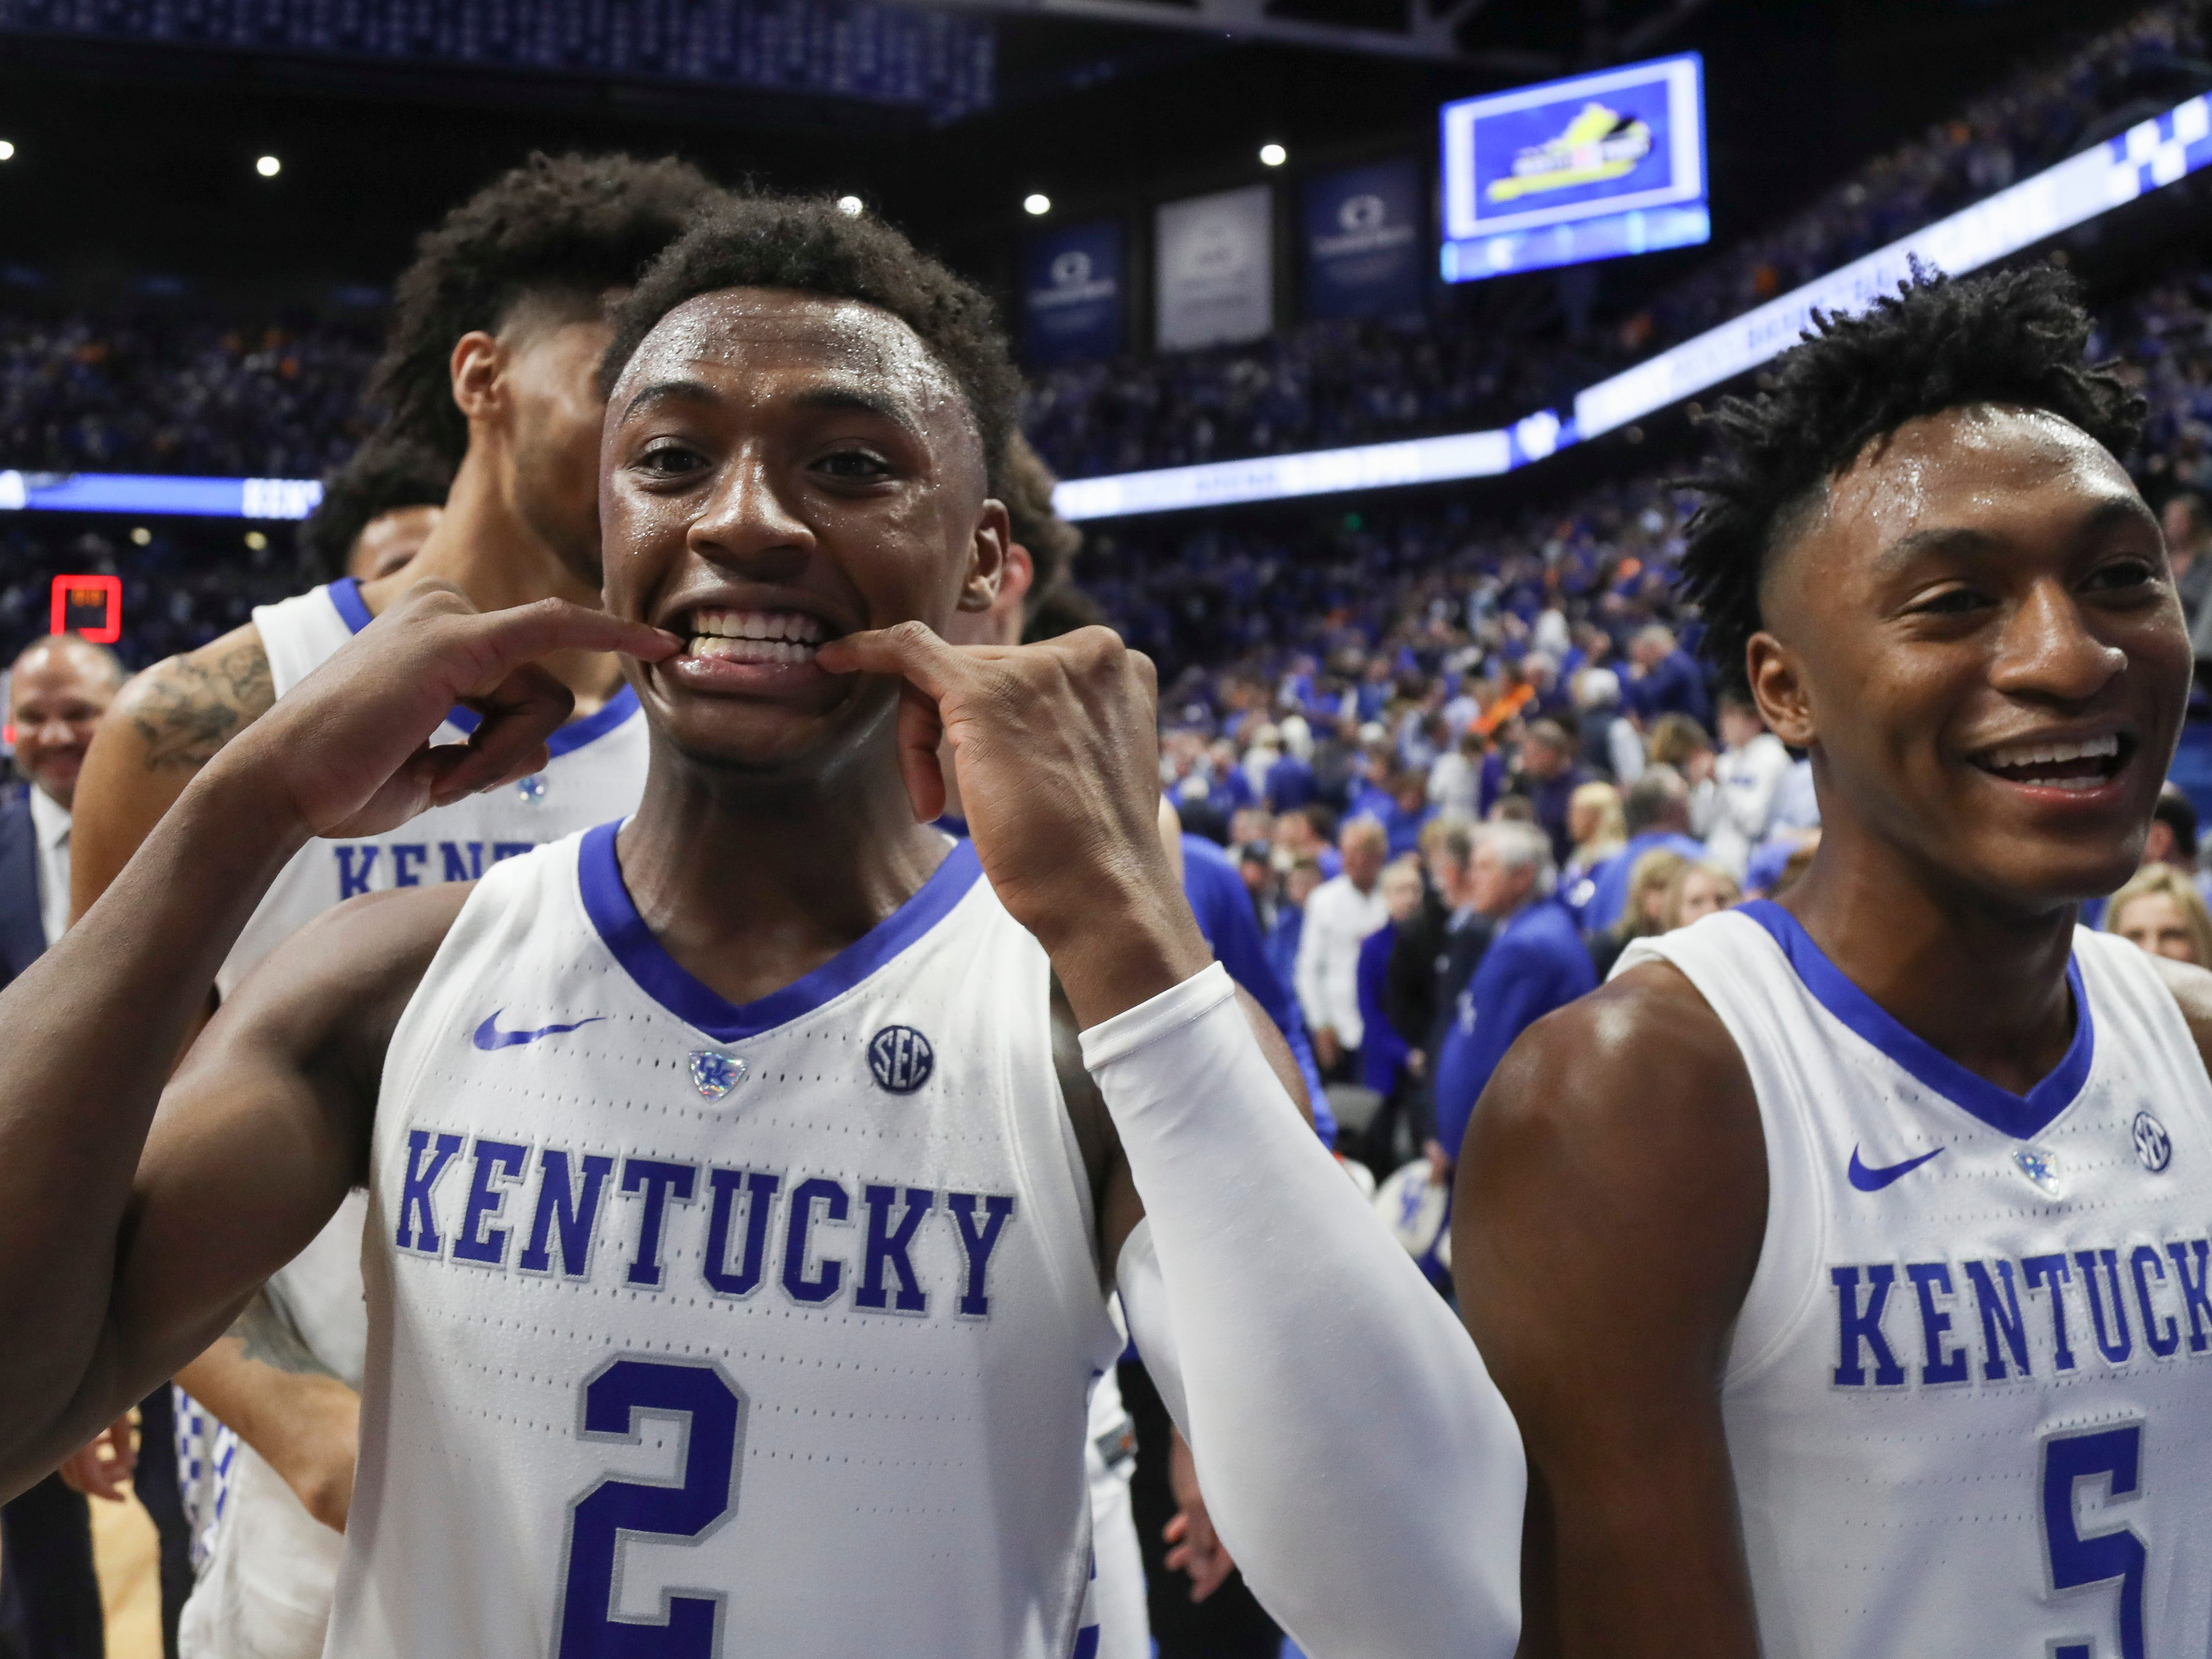 Kentucky players celebrate after the Wildcats' 86-69 win over No.1-ranked Tennessee Saturday night. Feb. 16, 2019